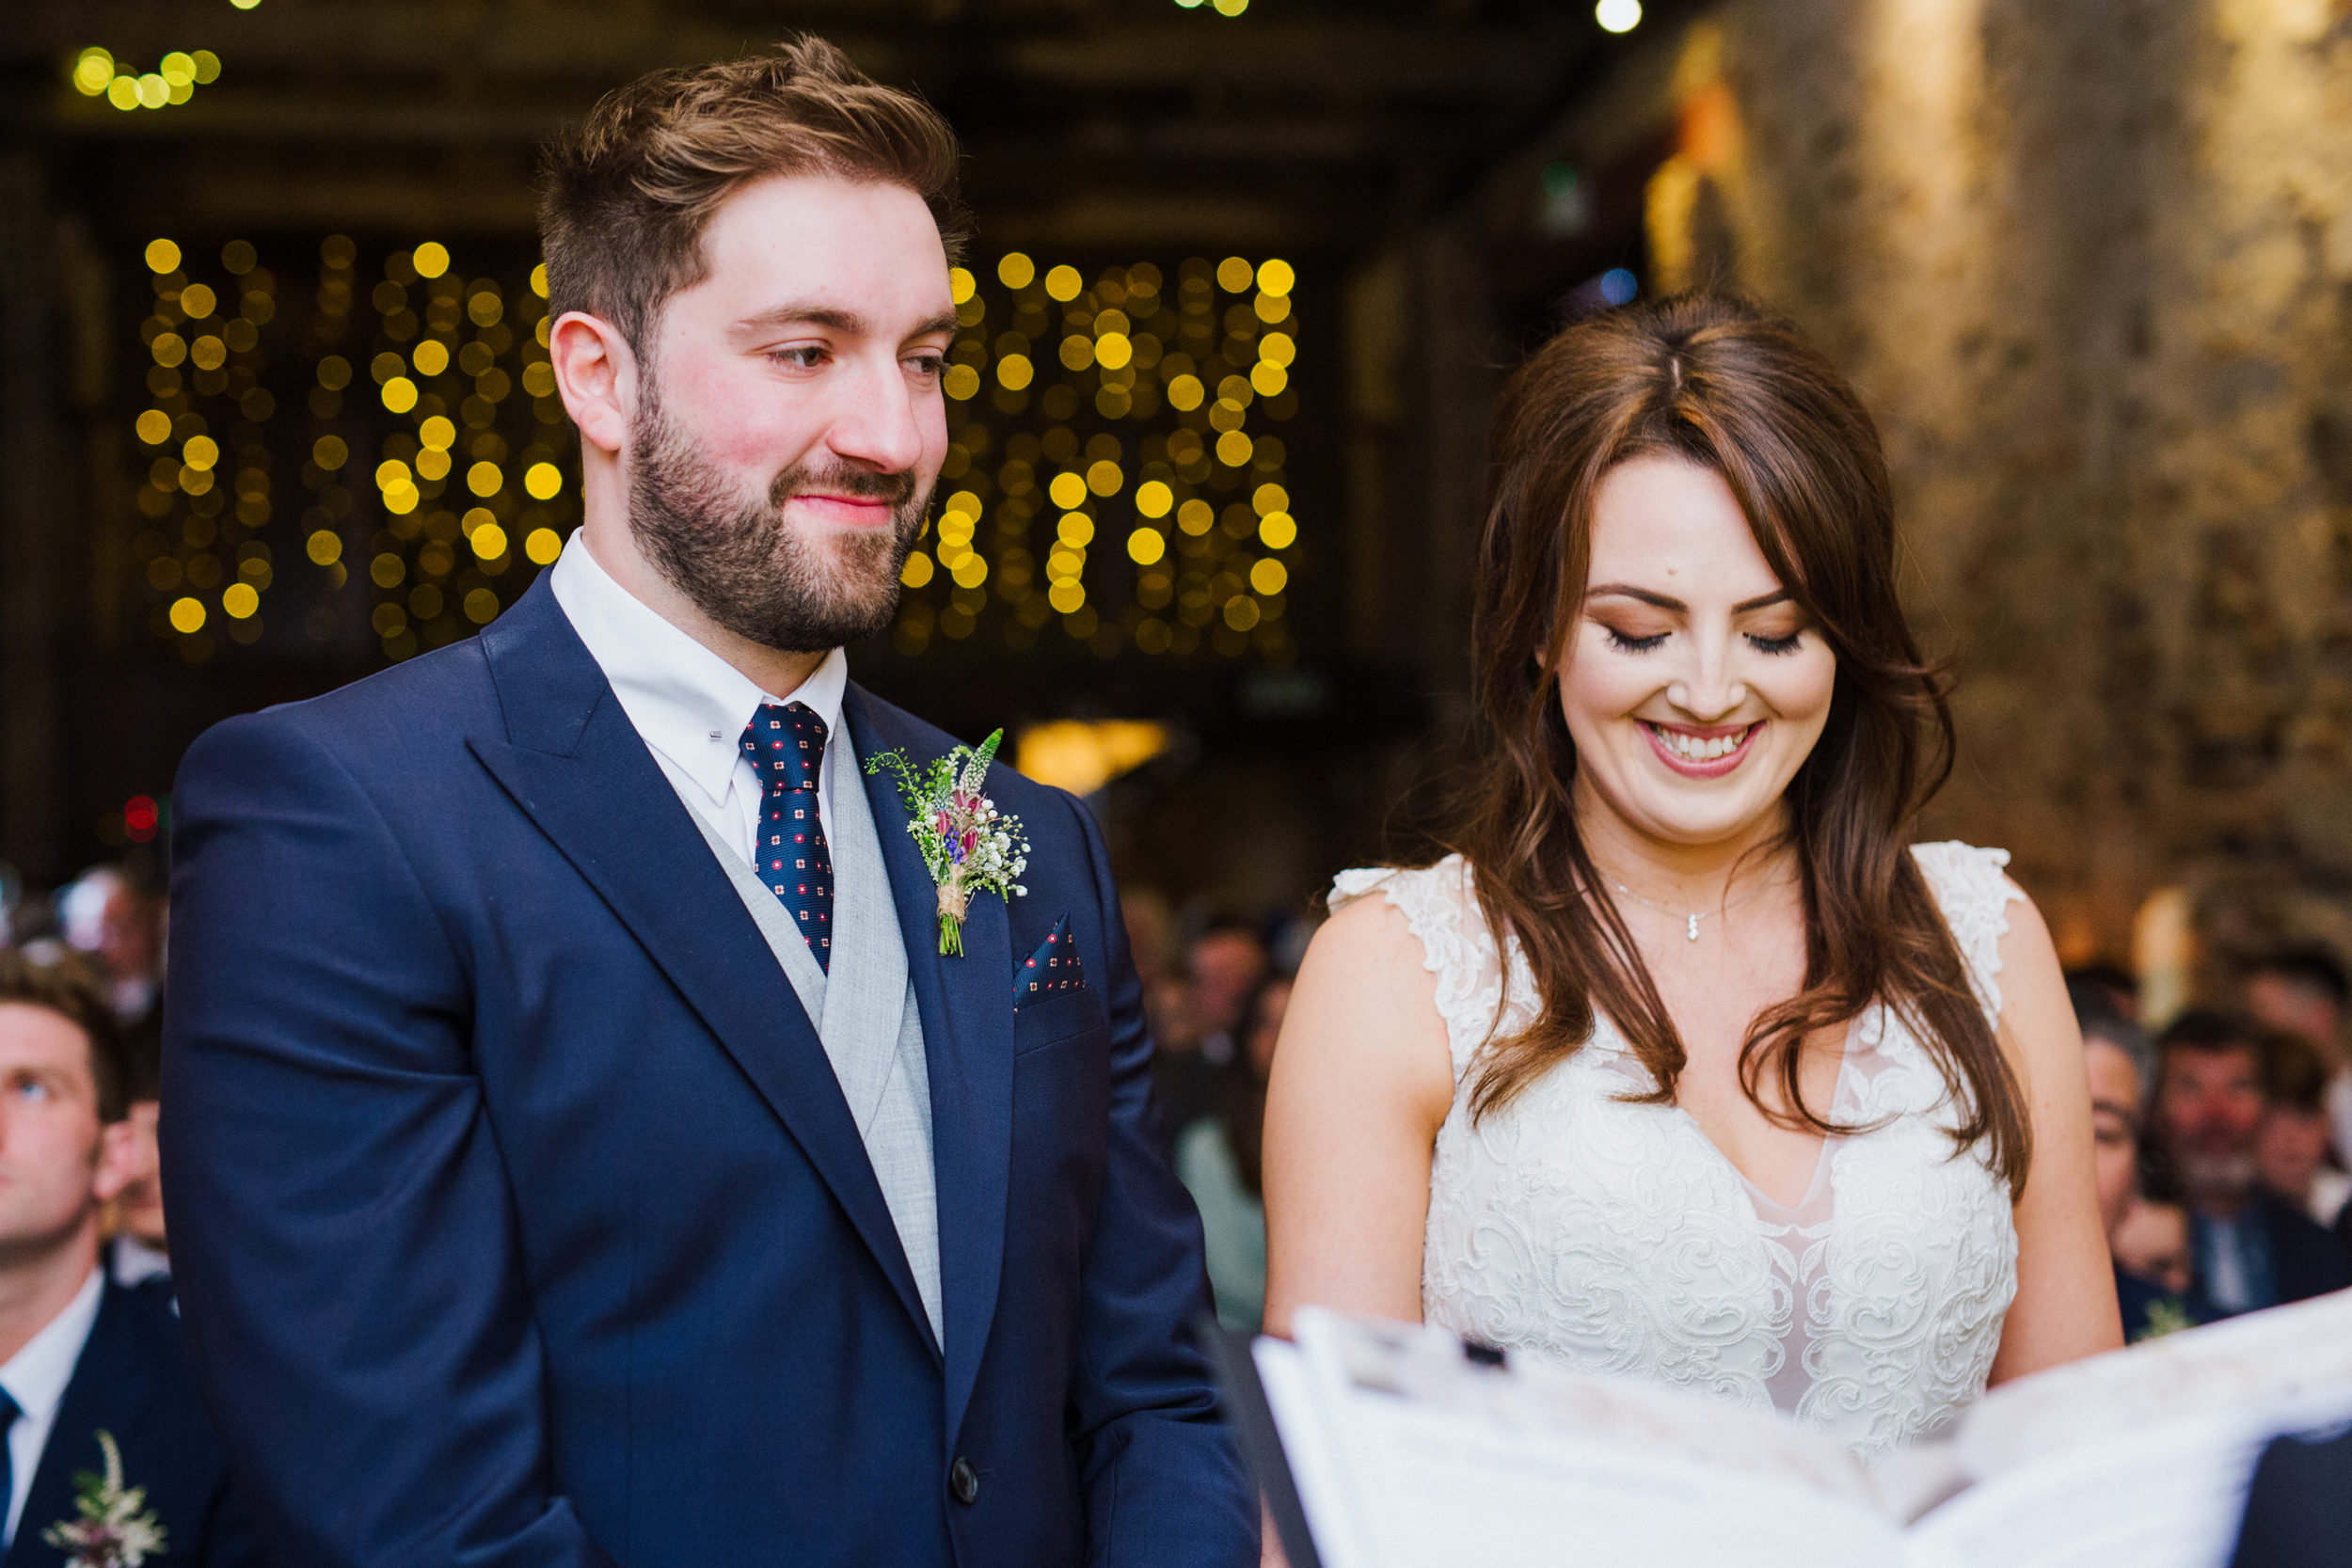 Bride and Groom smiling during their wedding ceremony at The Normans in York